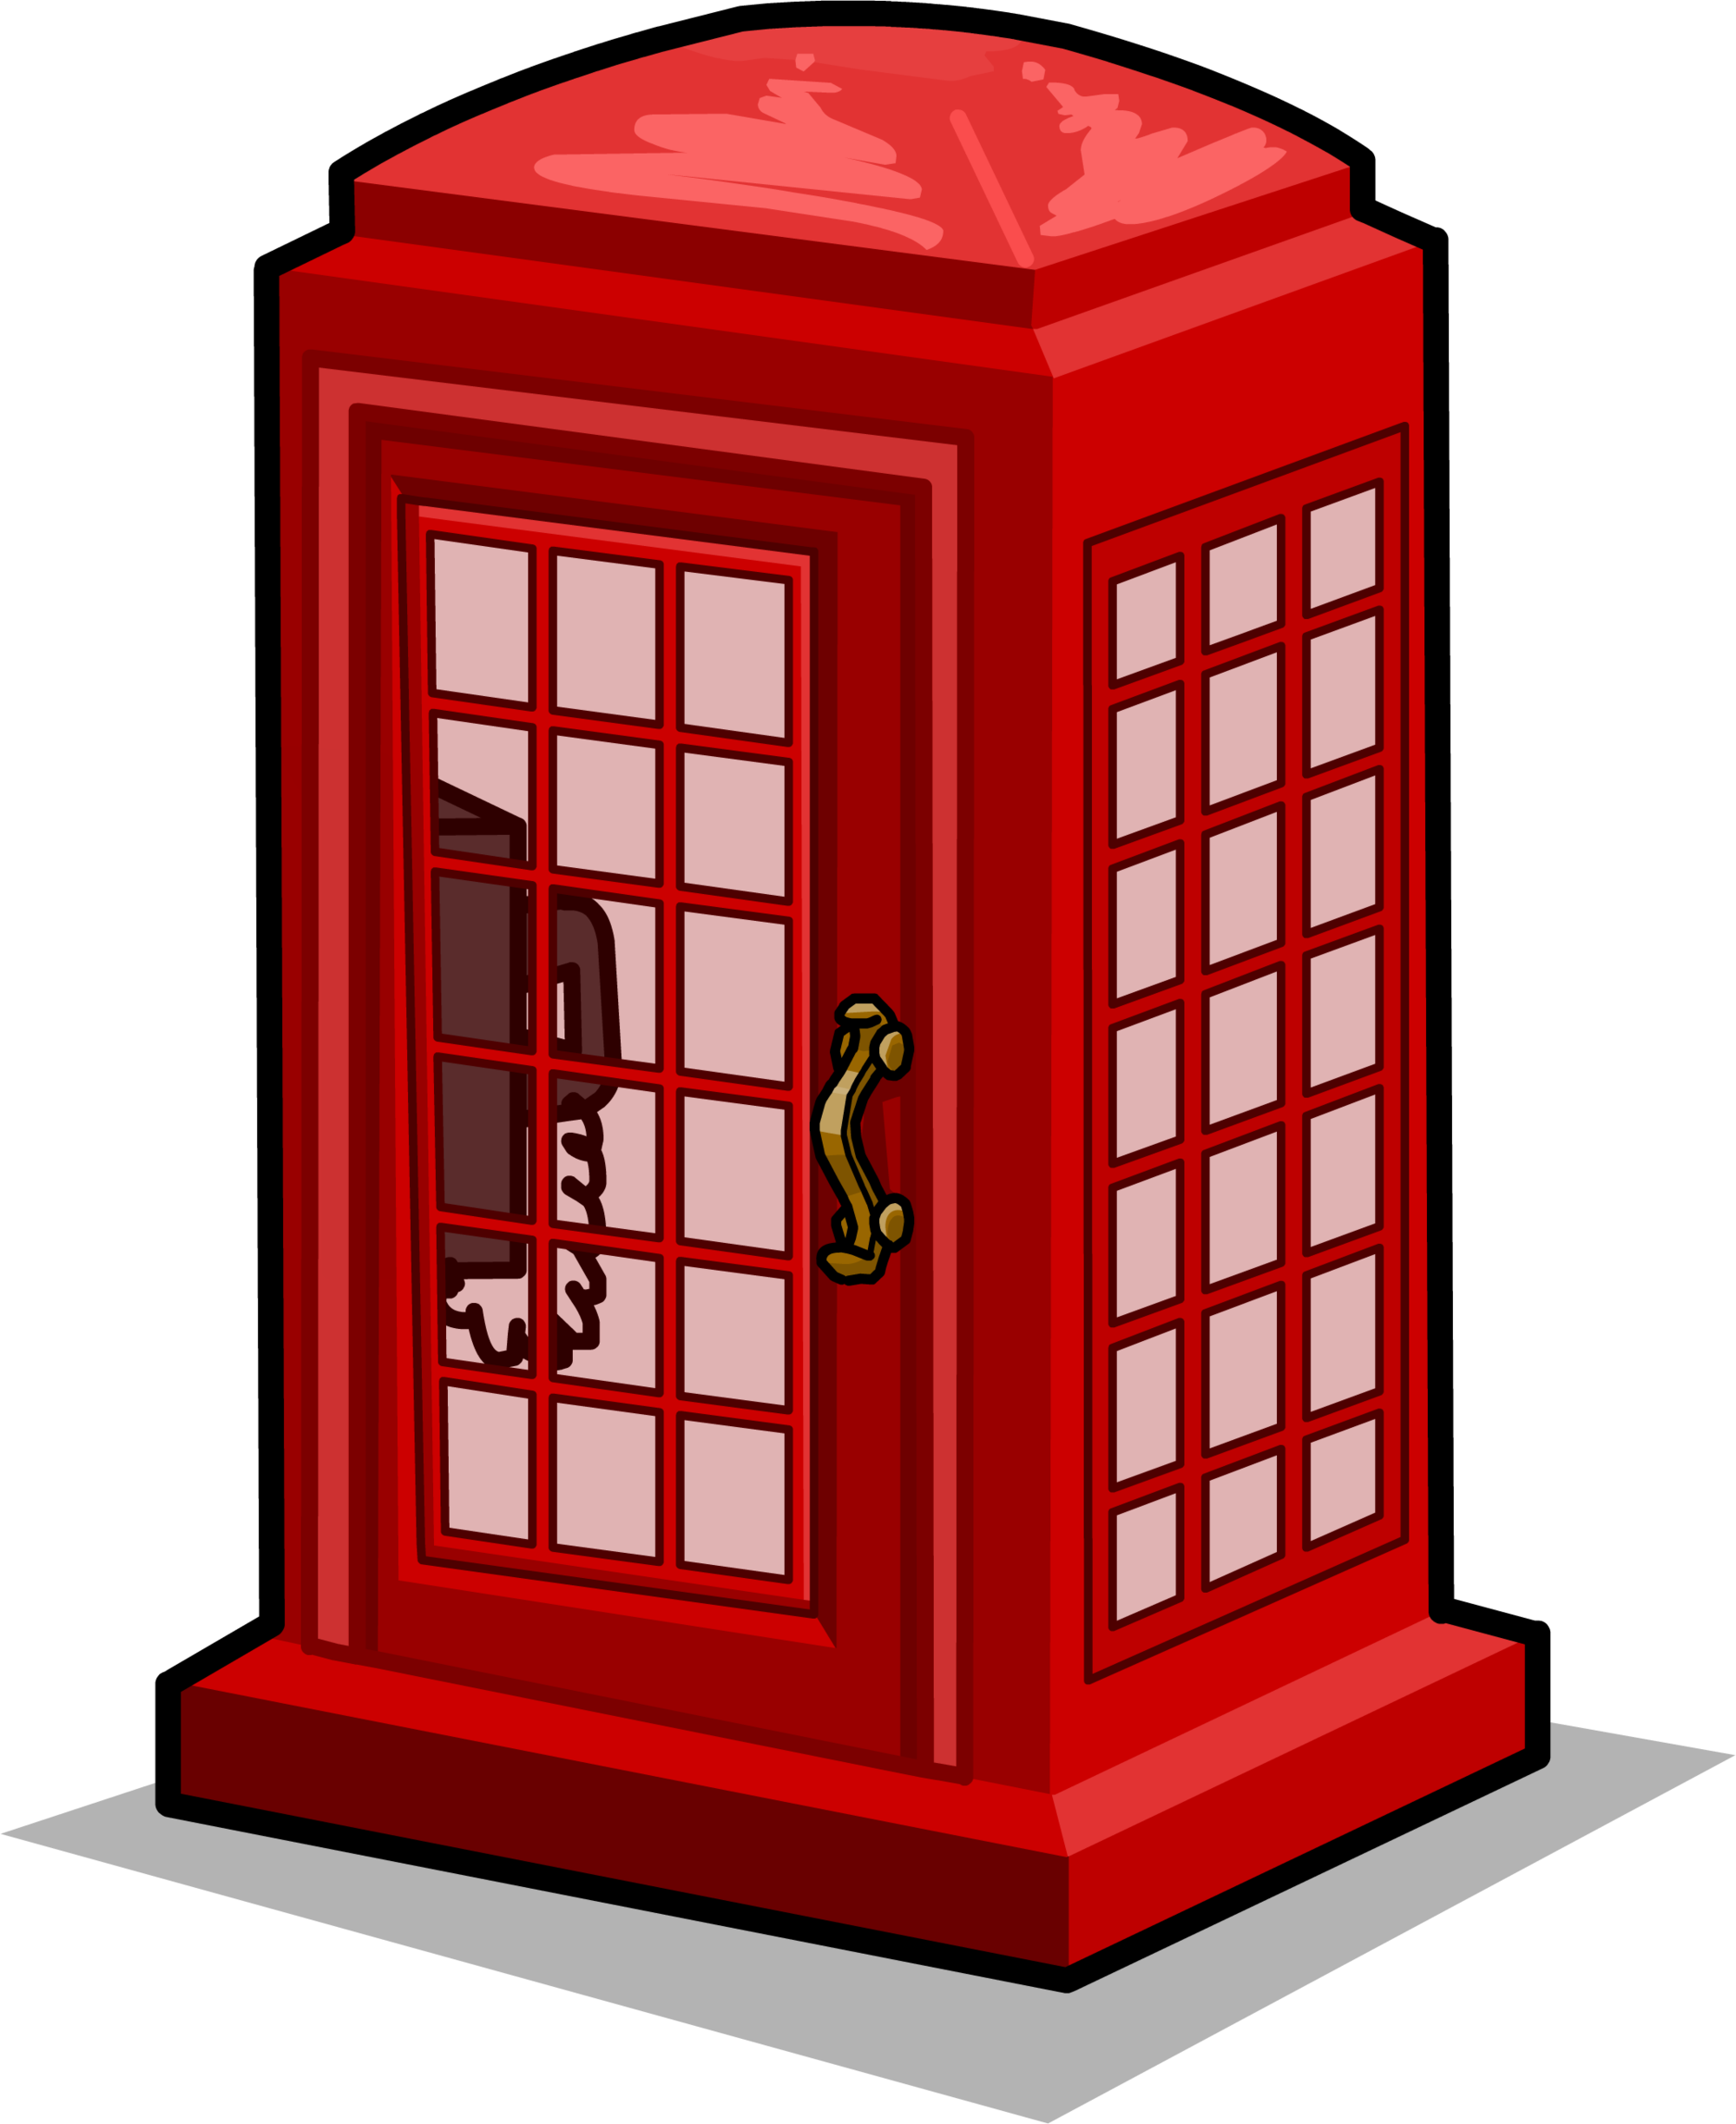 Telephone clipart red telephone. Phone booth png image